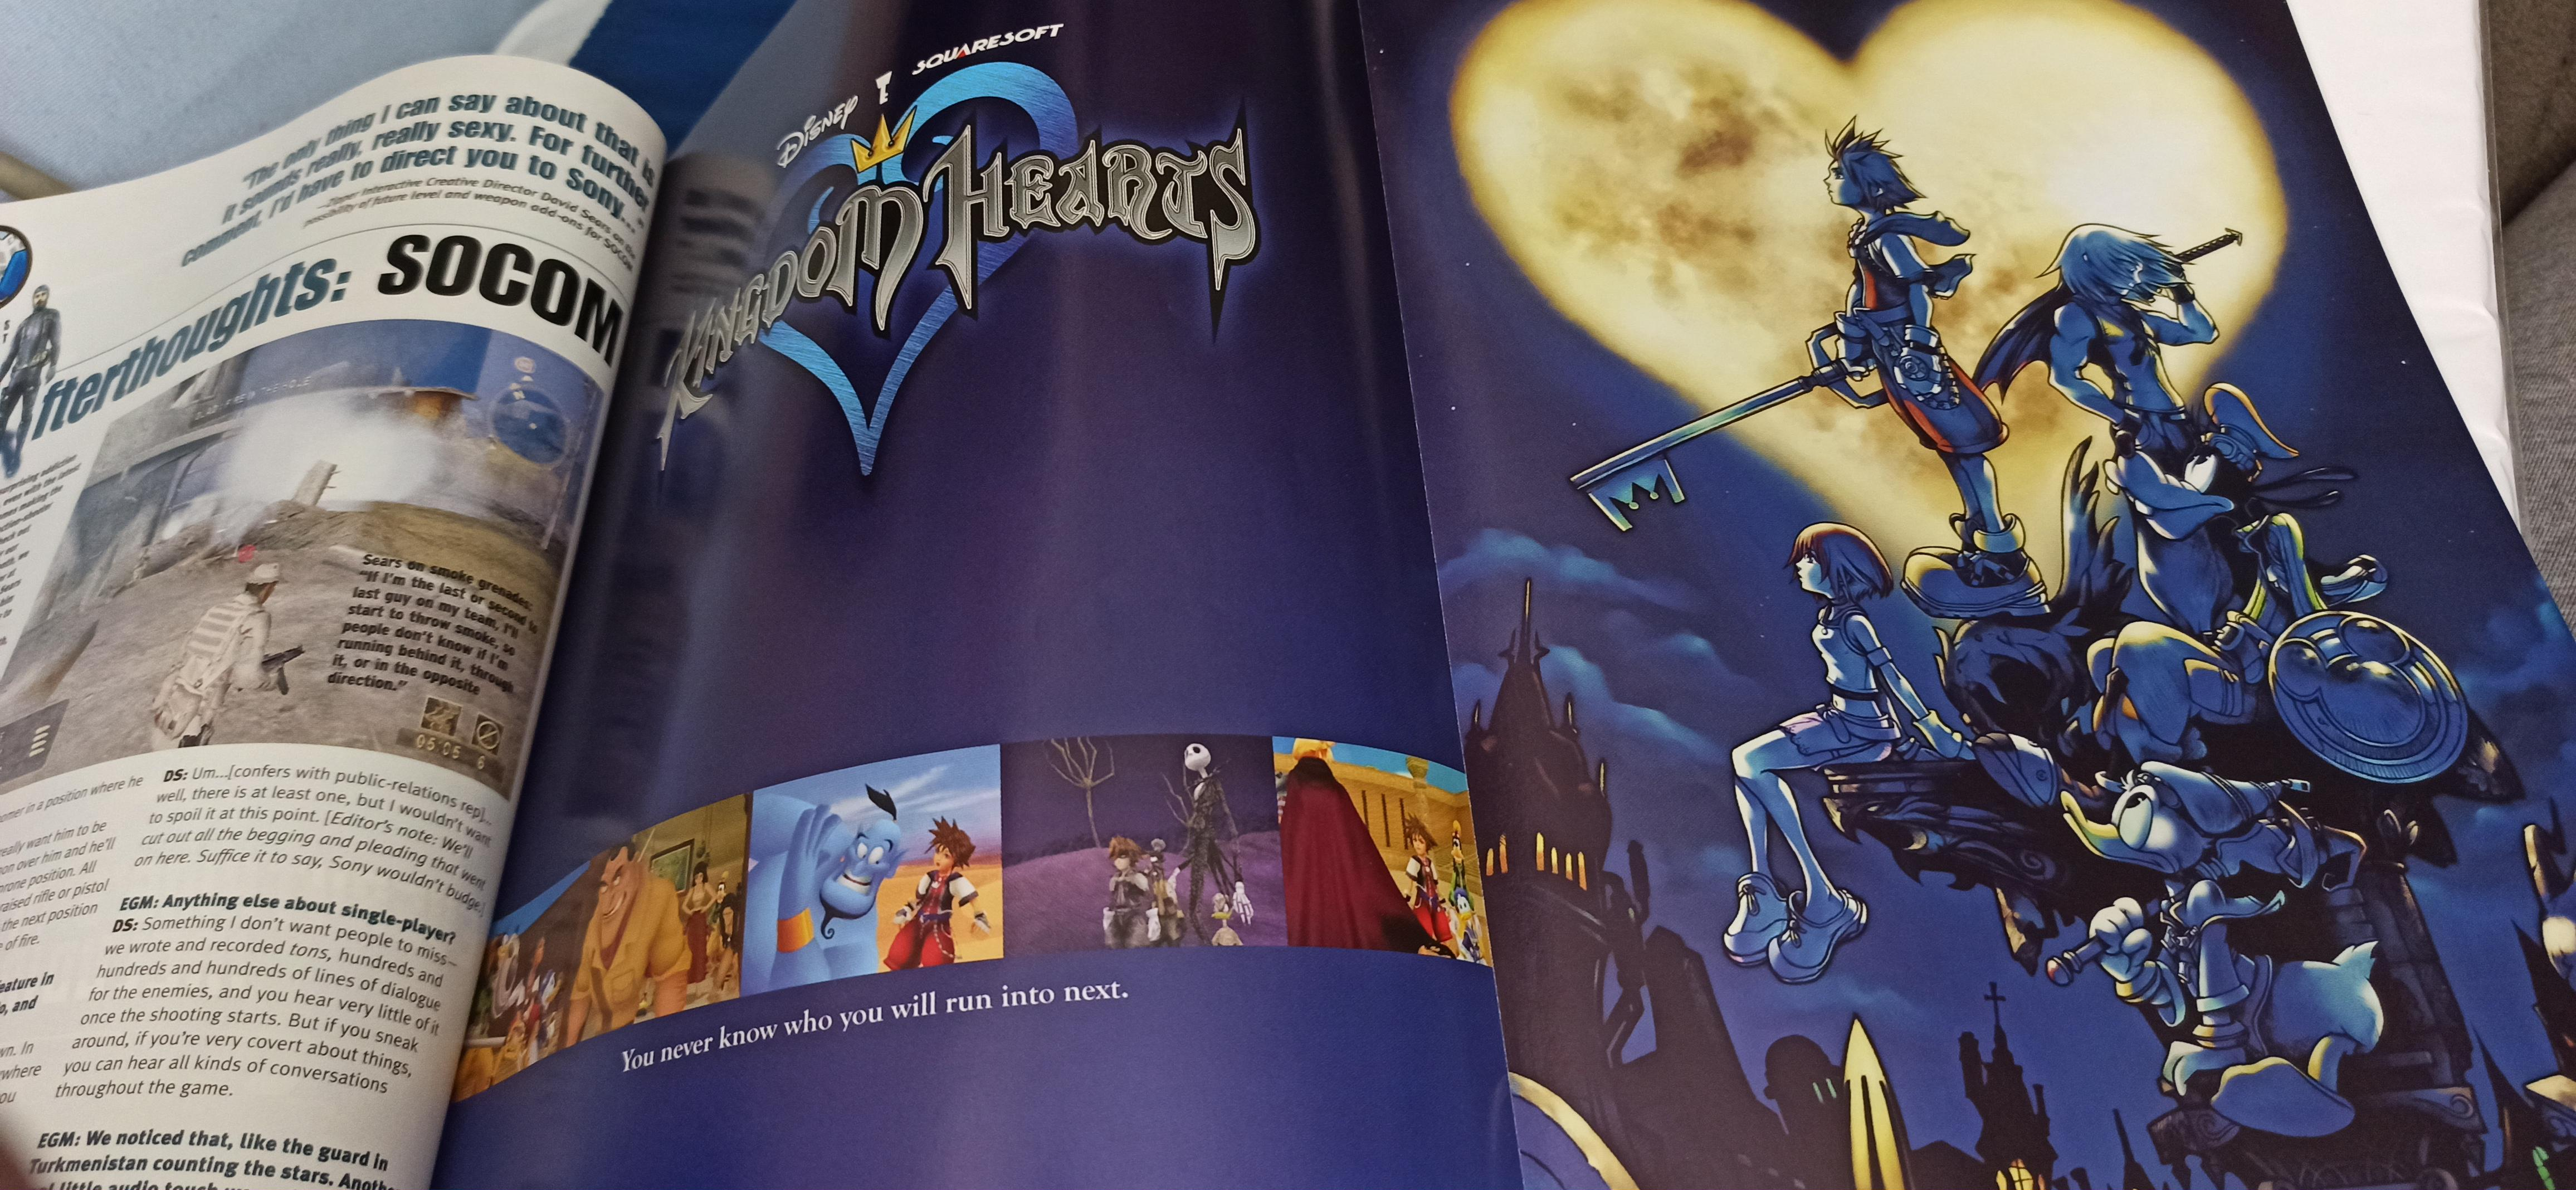 kingdom hearts poster in the october